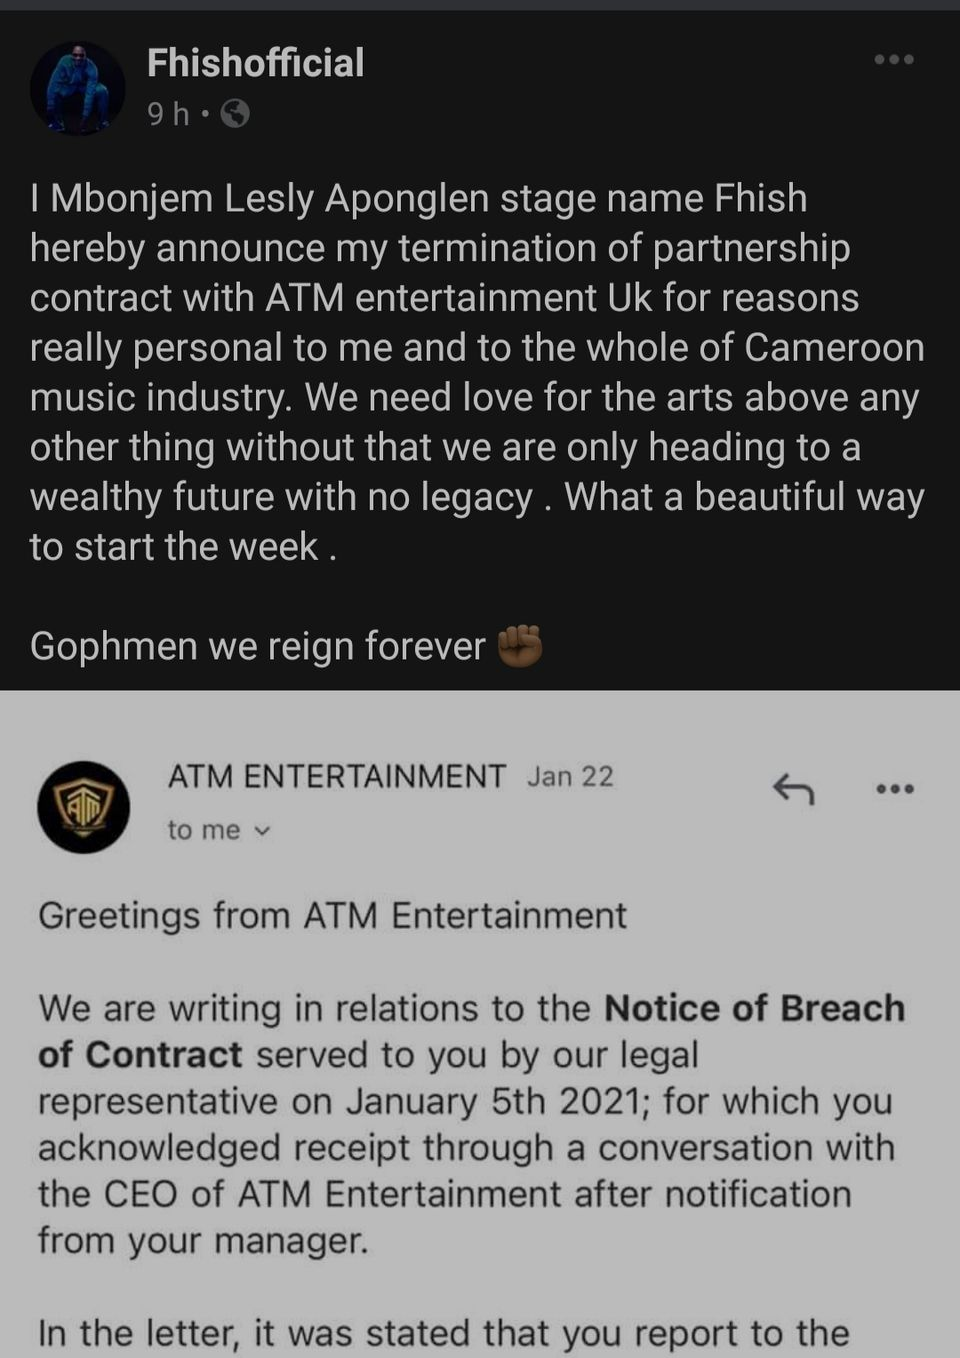 Fhish Replies To Termination of Contract